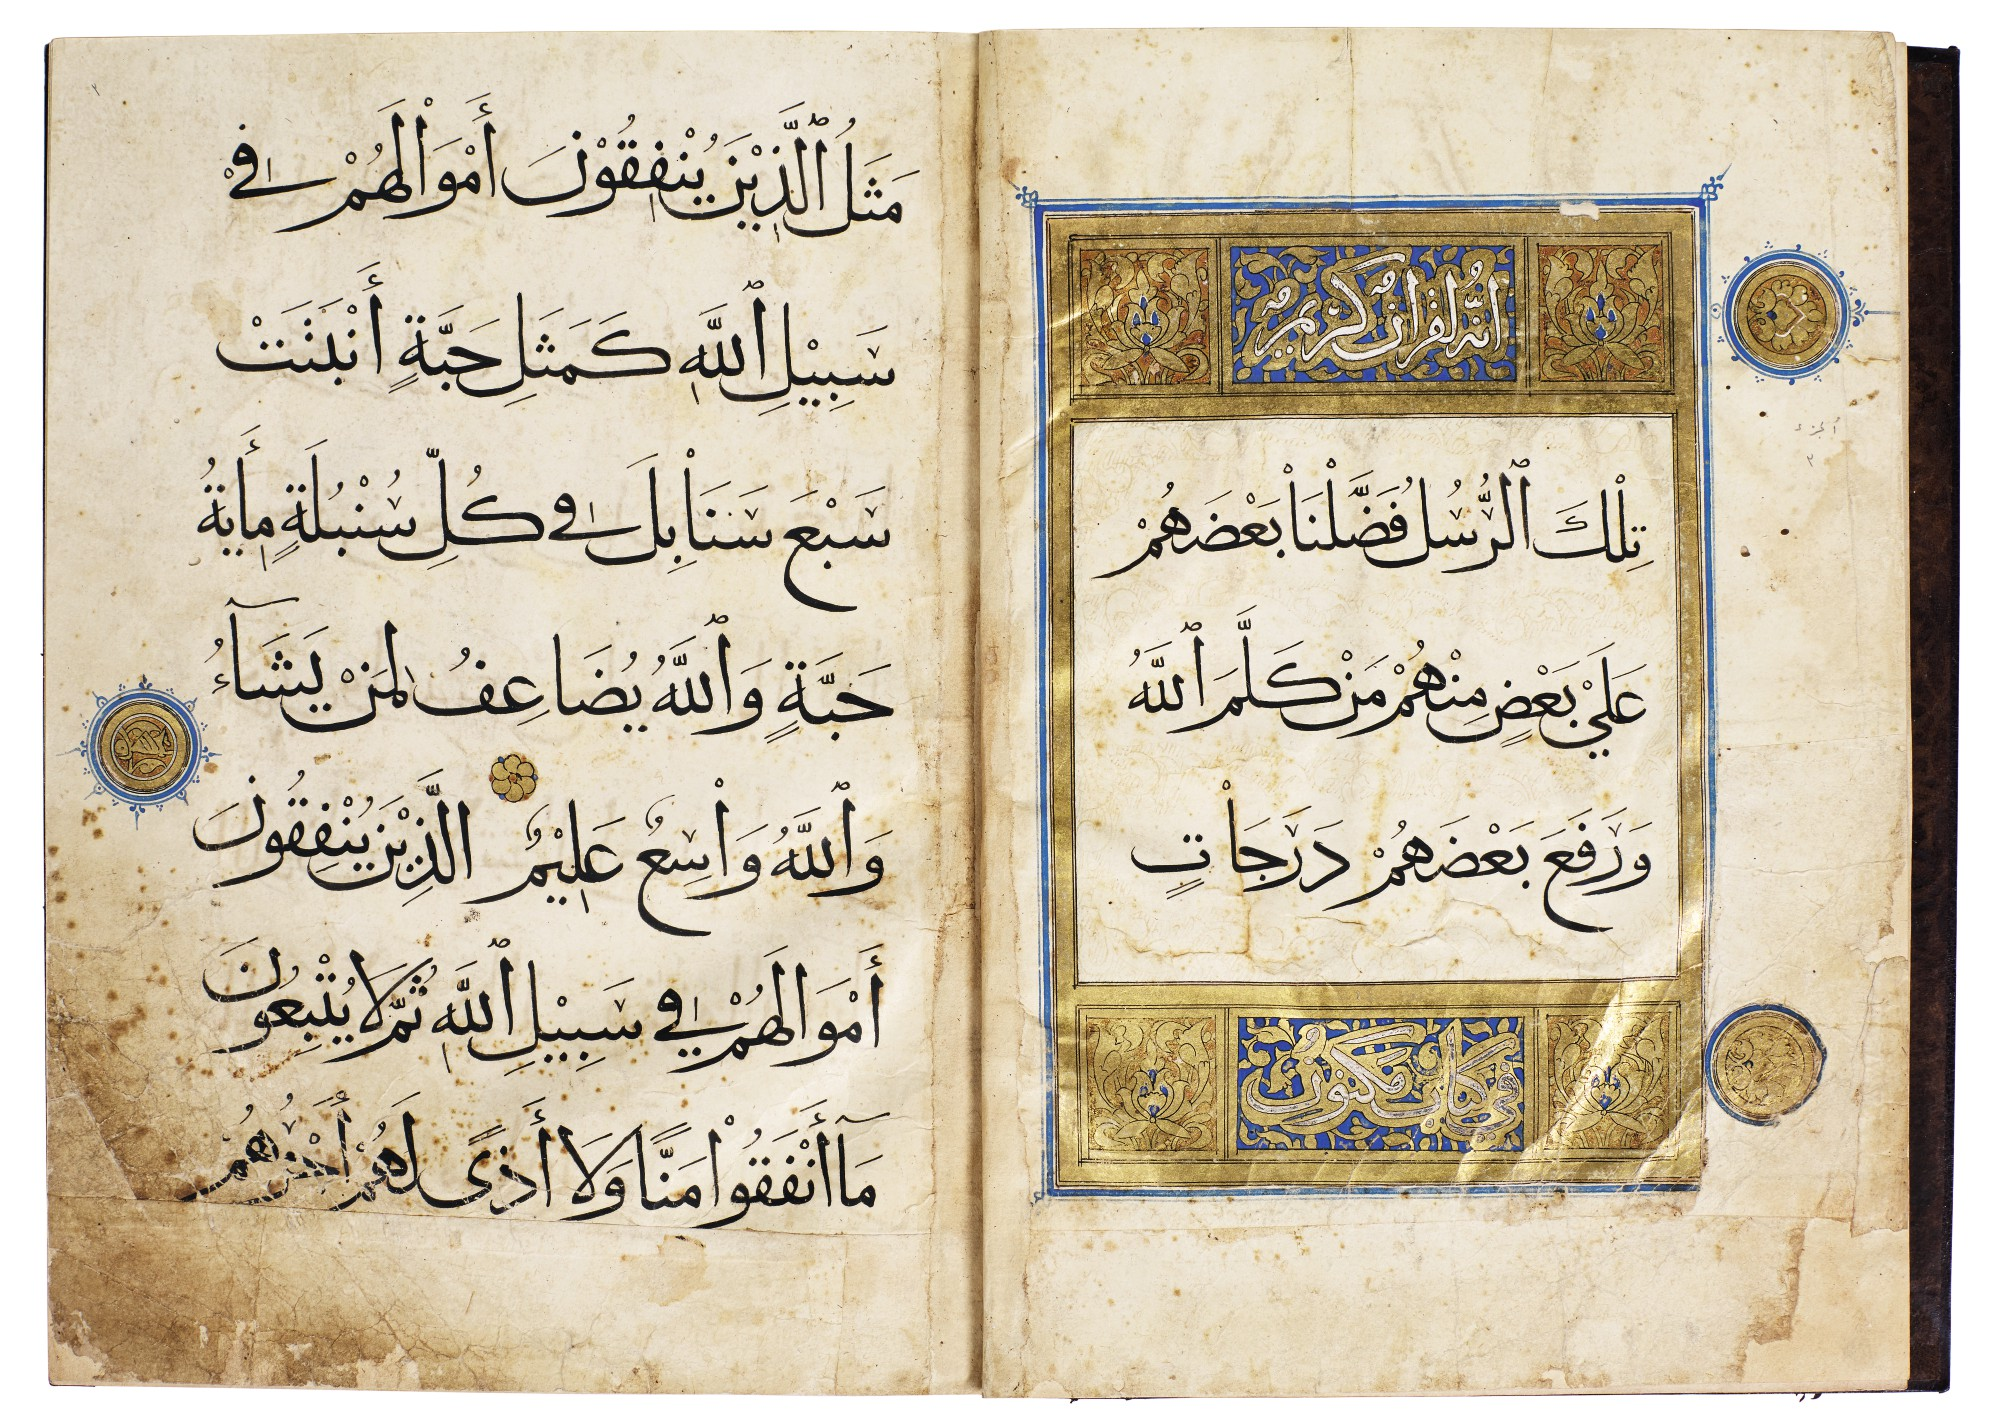 AN ILLUMINATED QUR'AN JUZ' (III), EGYPT, MAMLUK, 14TH/15TH CENTURY